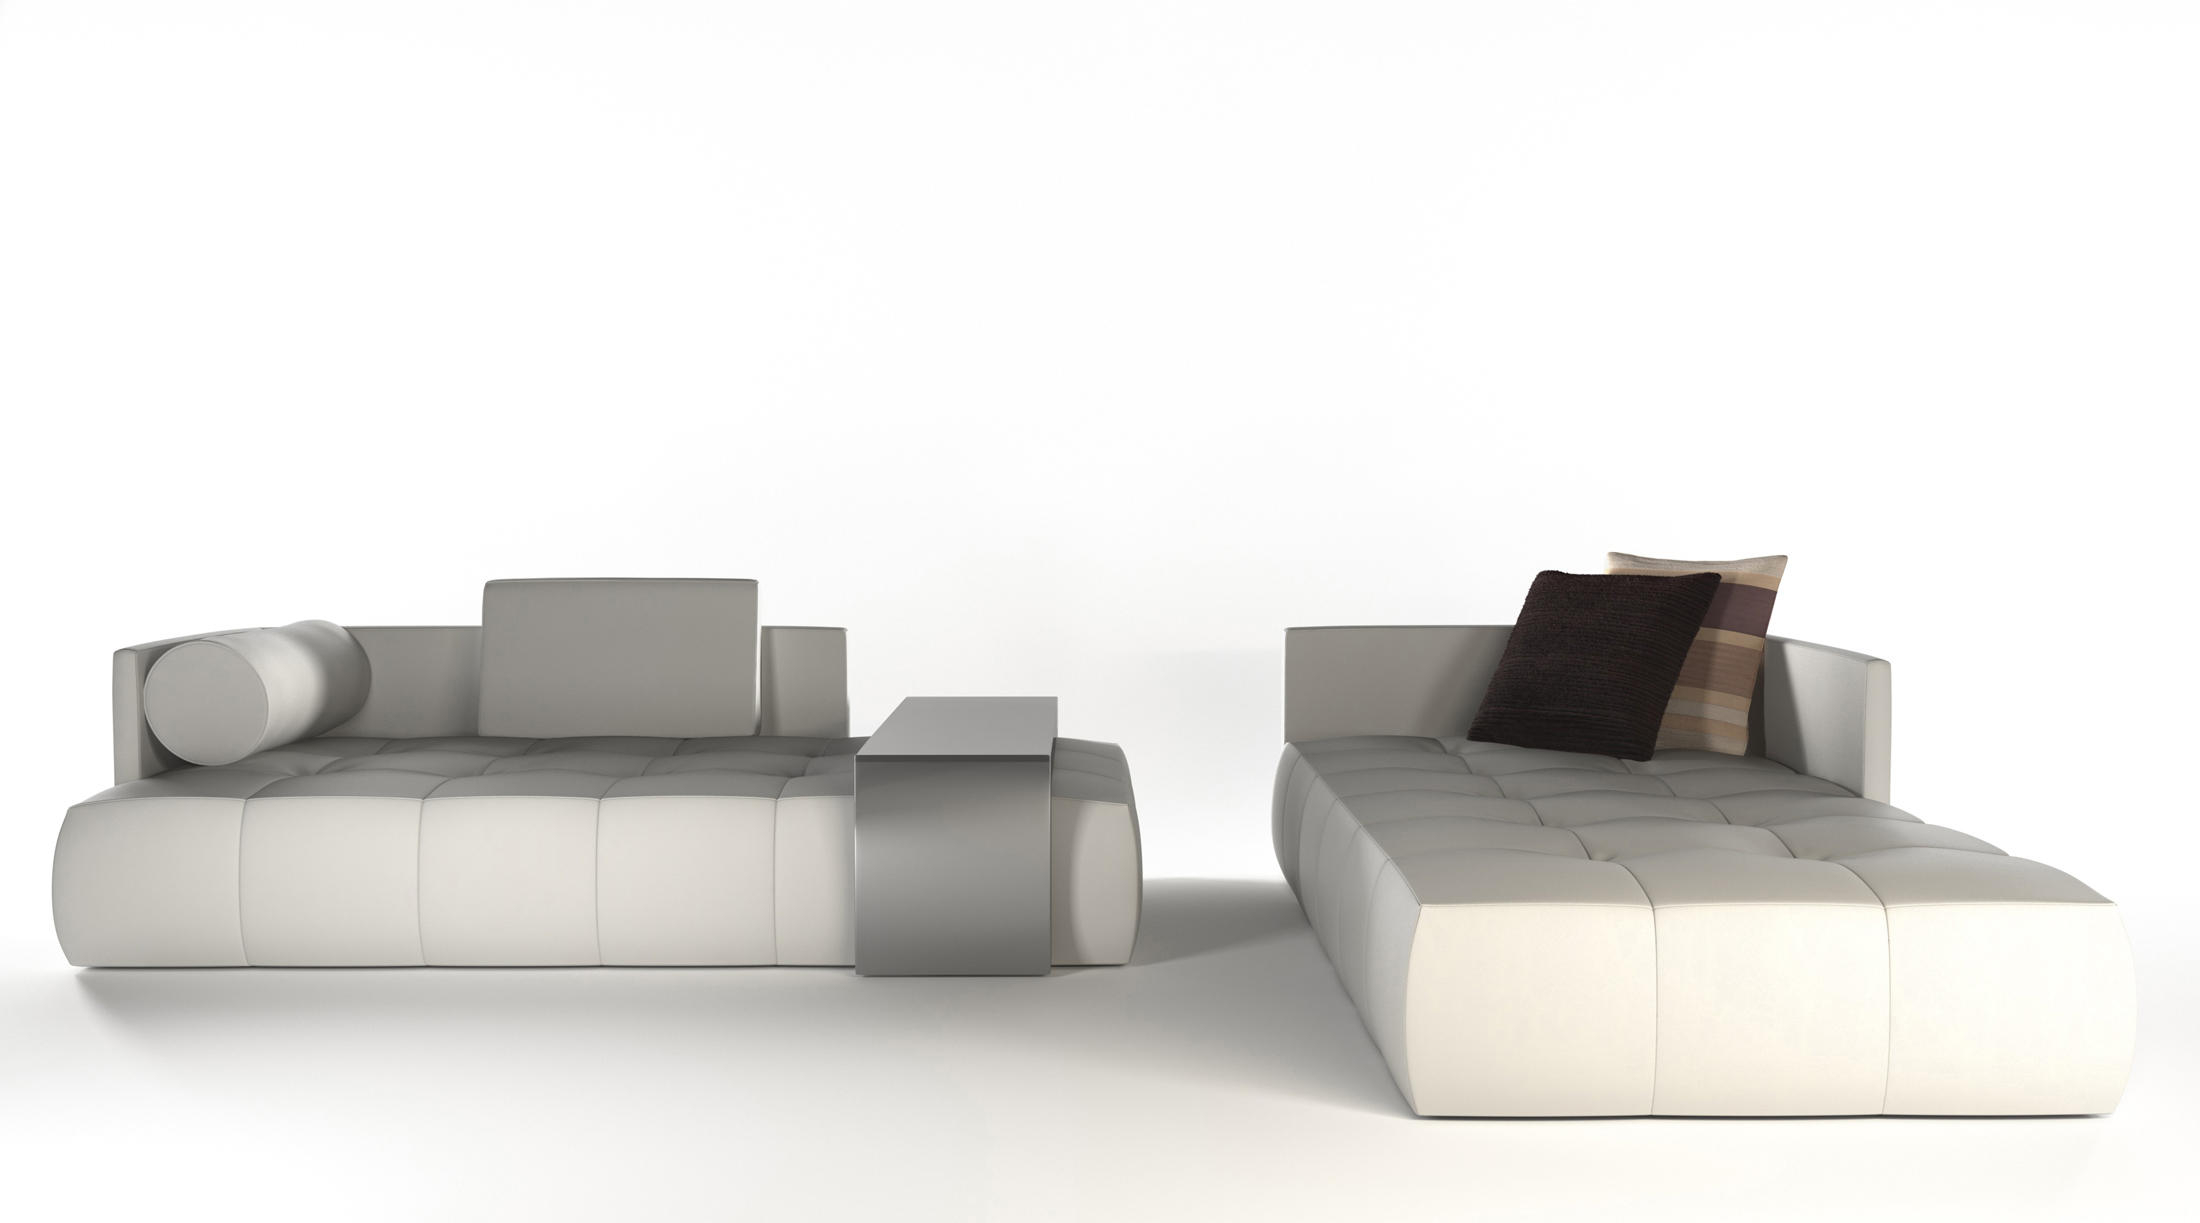 Chill Out sofas Xtd6 Chill Out sofa sofas From Thà Ny Collection Architonic